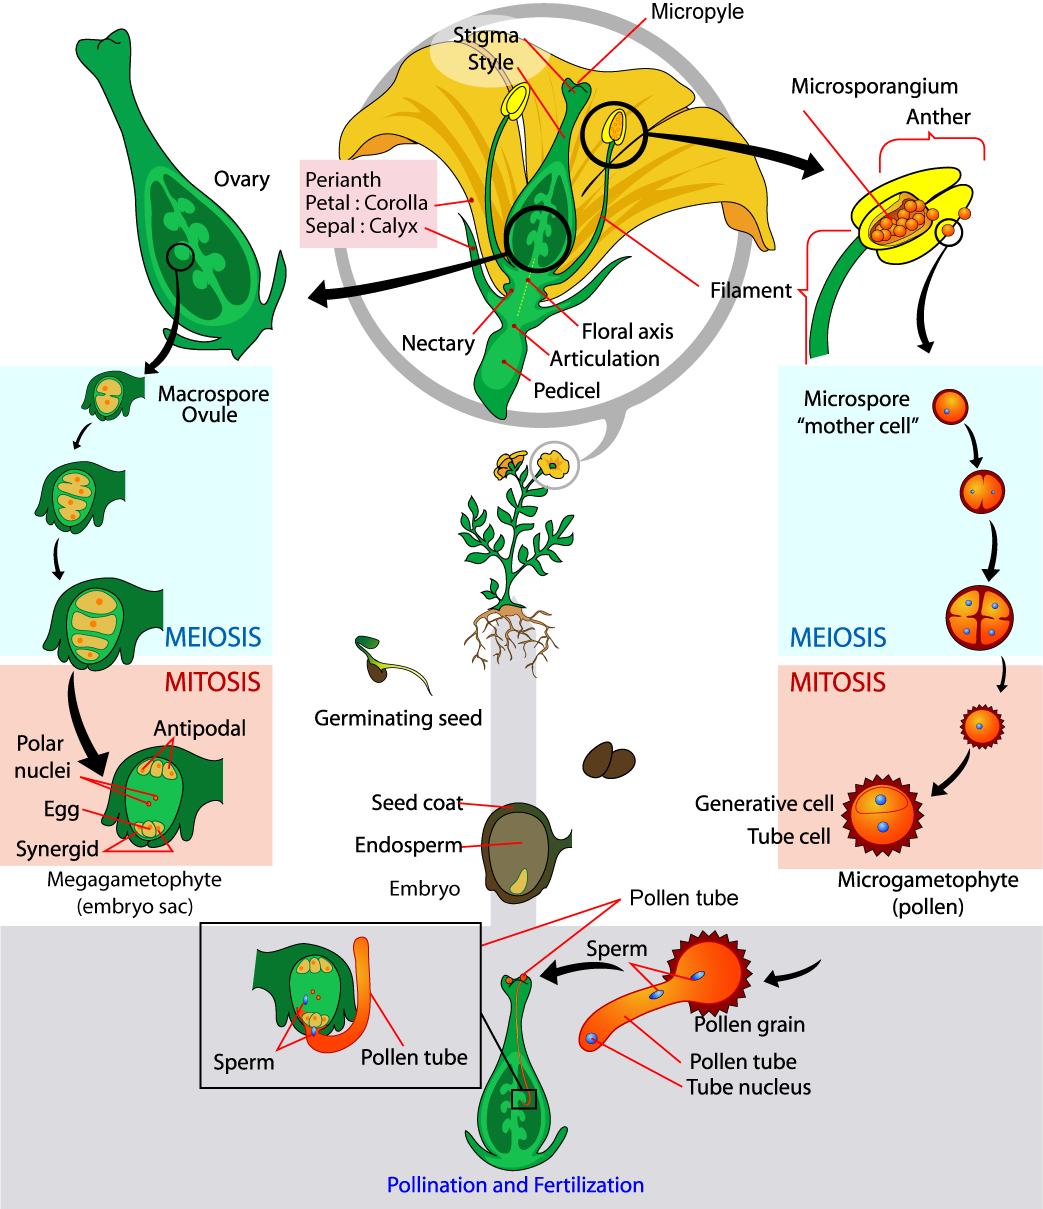 The parts of the flower are shown. The base of the perianth, which includes petals and sepals, is called the flora axis. A narrowing called the articulation separates the floral axis from the lower pedicel, which attached the flower to a stem. Microsporangia are in the anthers. Microspores, or mother cells form inside the microsporangia. The microspore undergoes meiosis, producing four cells, each of which becomes a grain of pollen with a hard coating. The pollen grain undergoes mitosis, producing a generative cell and a tube cell. Macrospores form inside vase-like carpel, in the ovules, which are in the ovaries. The macrospores undergo meiosis, producing four cells. The cells then undergo mitosis, producing three antipodals, two polar nuclei, and egg and two synergids, each with a nucleus. Together, these cells are called the megagametophyte, or embryo sac. Pollination occurs when a pollen grain lands on the stigma, the flat structure at the top of the carpel.  The tube nucleus grows into the long style, to the ovary. There, the generative cell of the sperm fertilizes the egg.